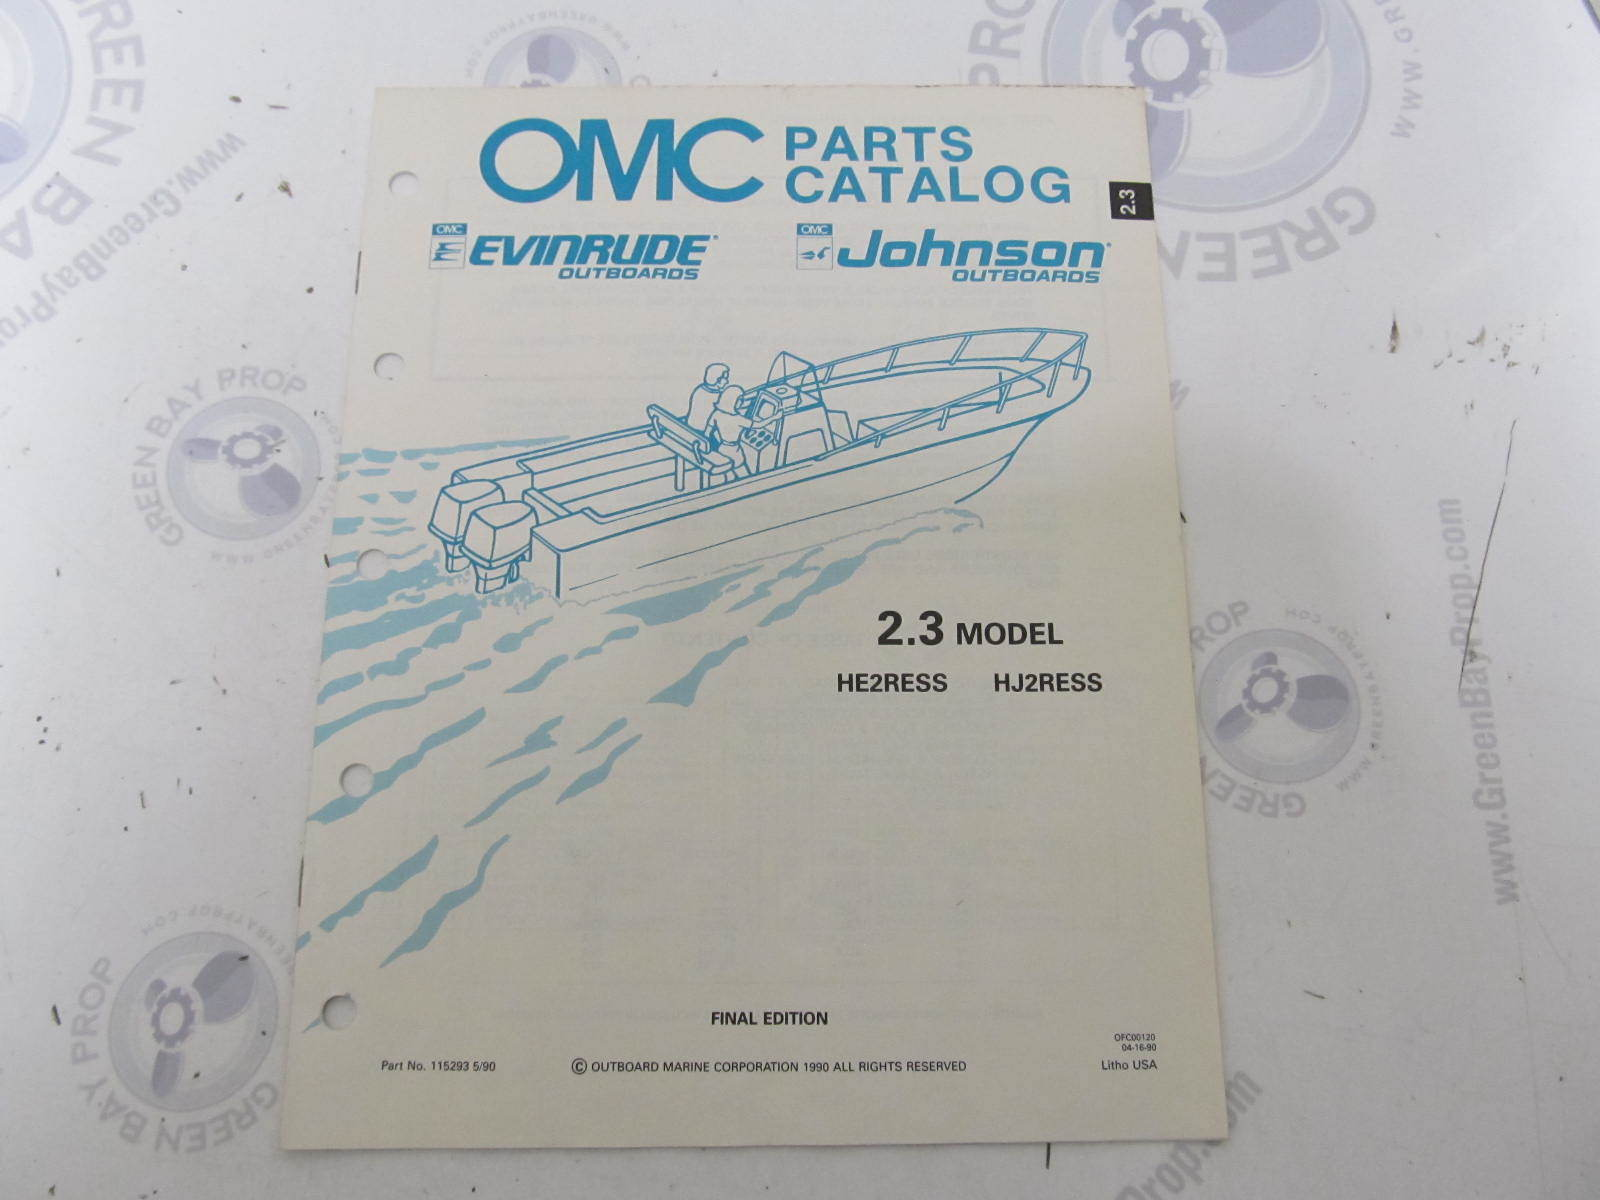 115293 1990 OMC Evinrude Johnson Outboard Parts Catalog 2 3 HP